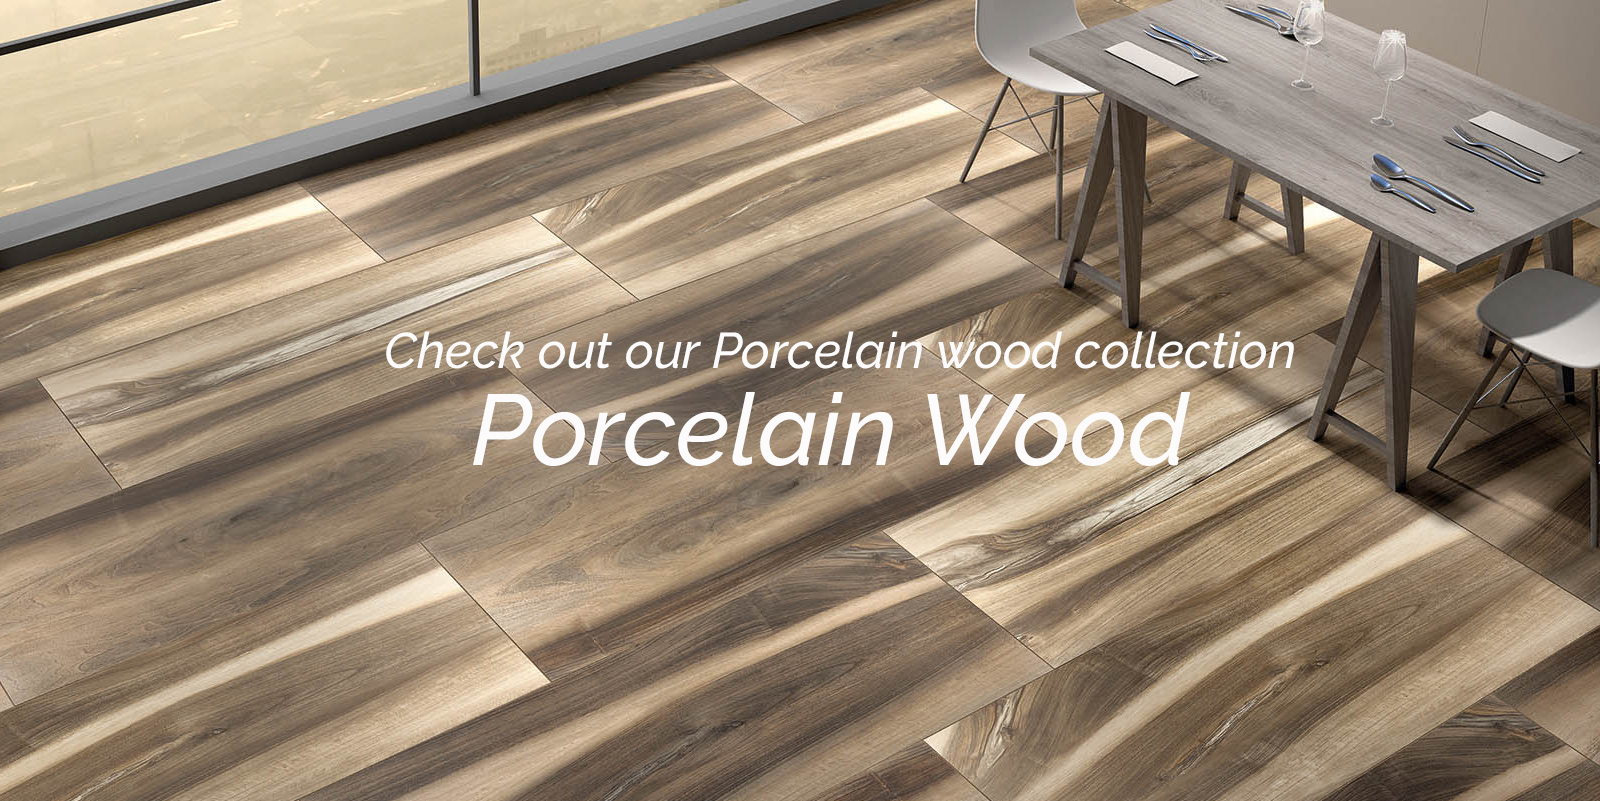 Tilesdirect buy discount tiles online tile store porcelain wood tiles dailygadgetfo Choice Image